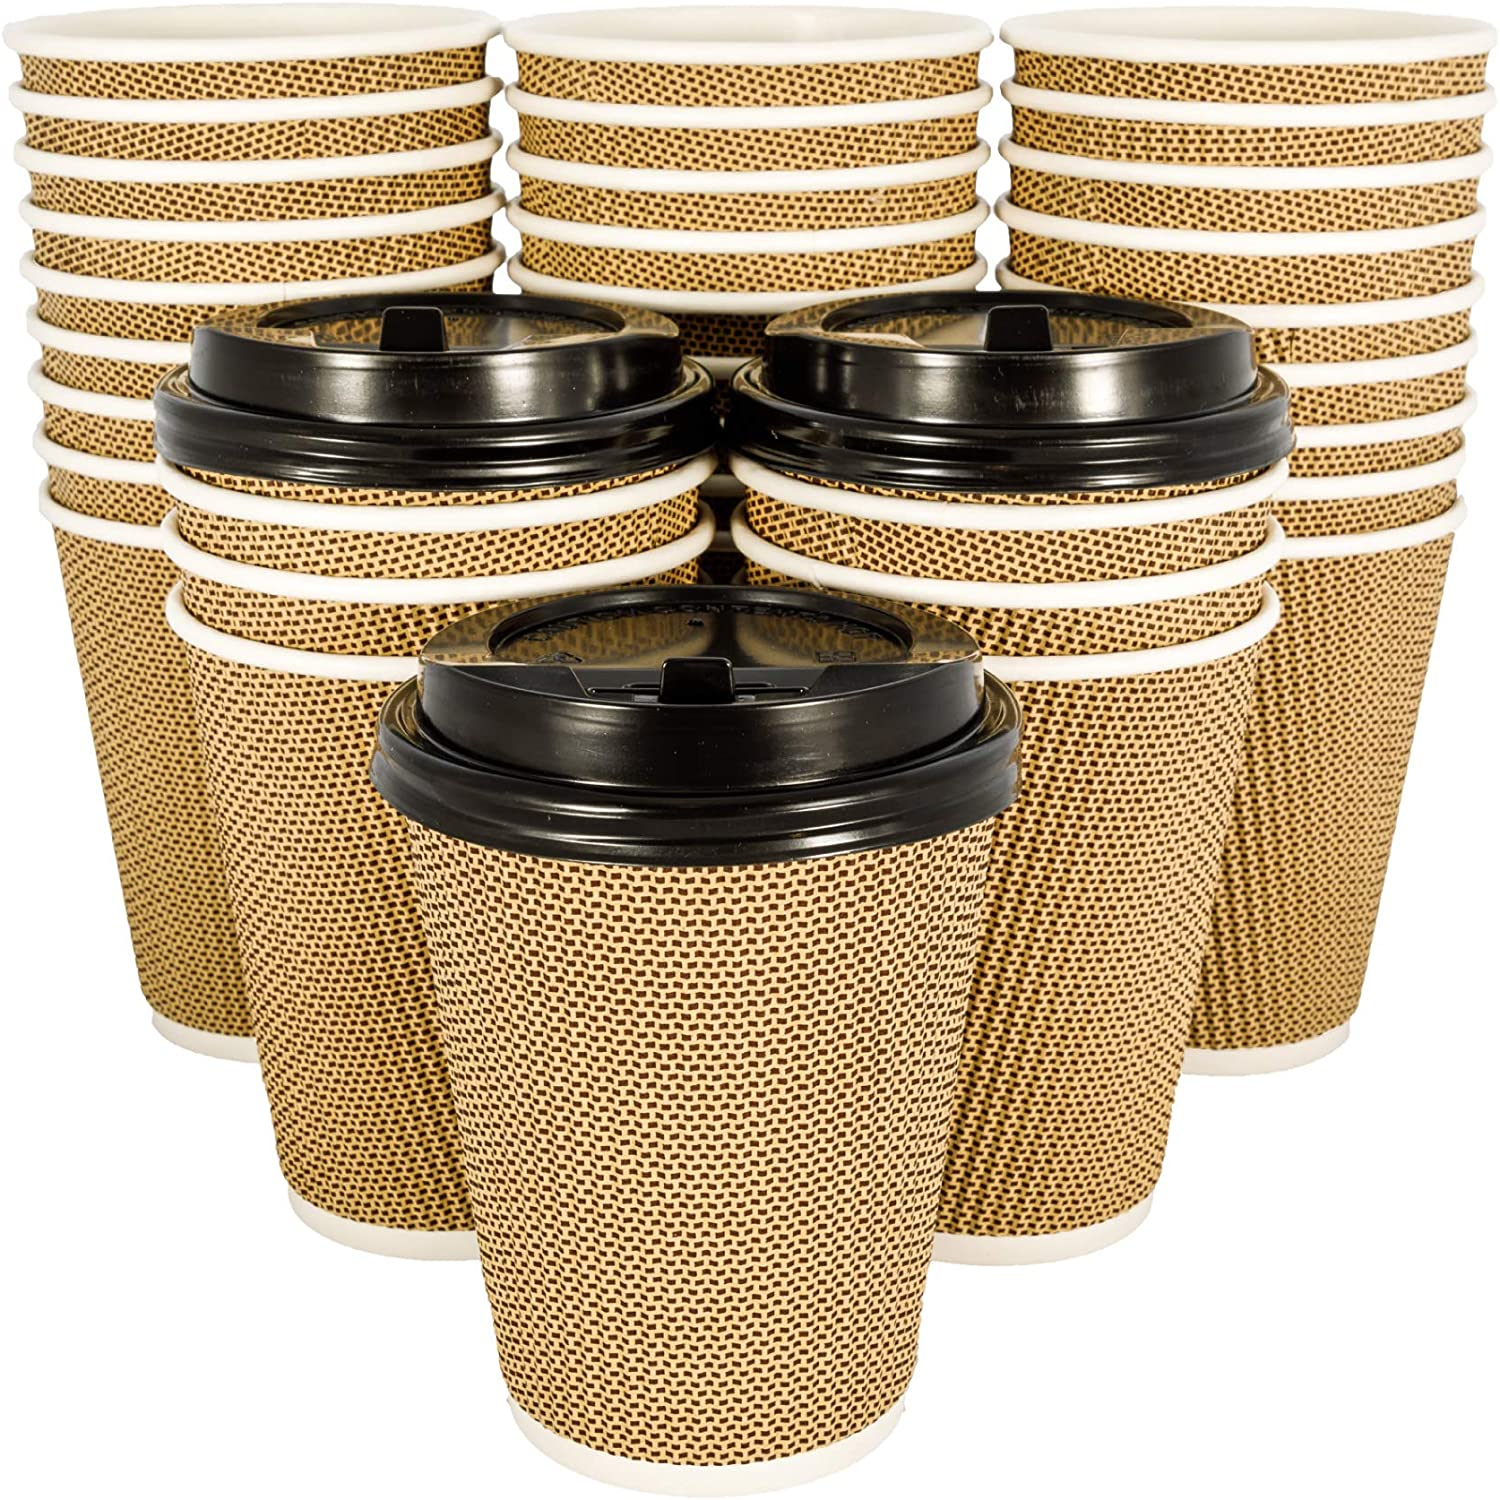 OzBSP 100 Pack Brown 12 oz Disposable Coffee Cups with Lids - Insulated Double Wall 12oz Paper Coffee Cups with Lids - No Sleeves Needed - to Go Coffee Cup Leak Proof Lids. Microwaveable Hot Cups togo